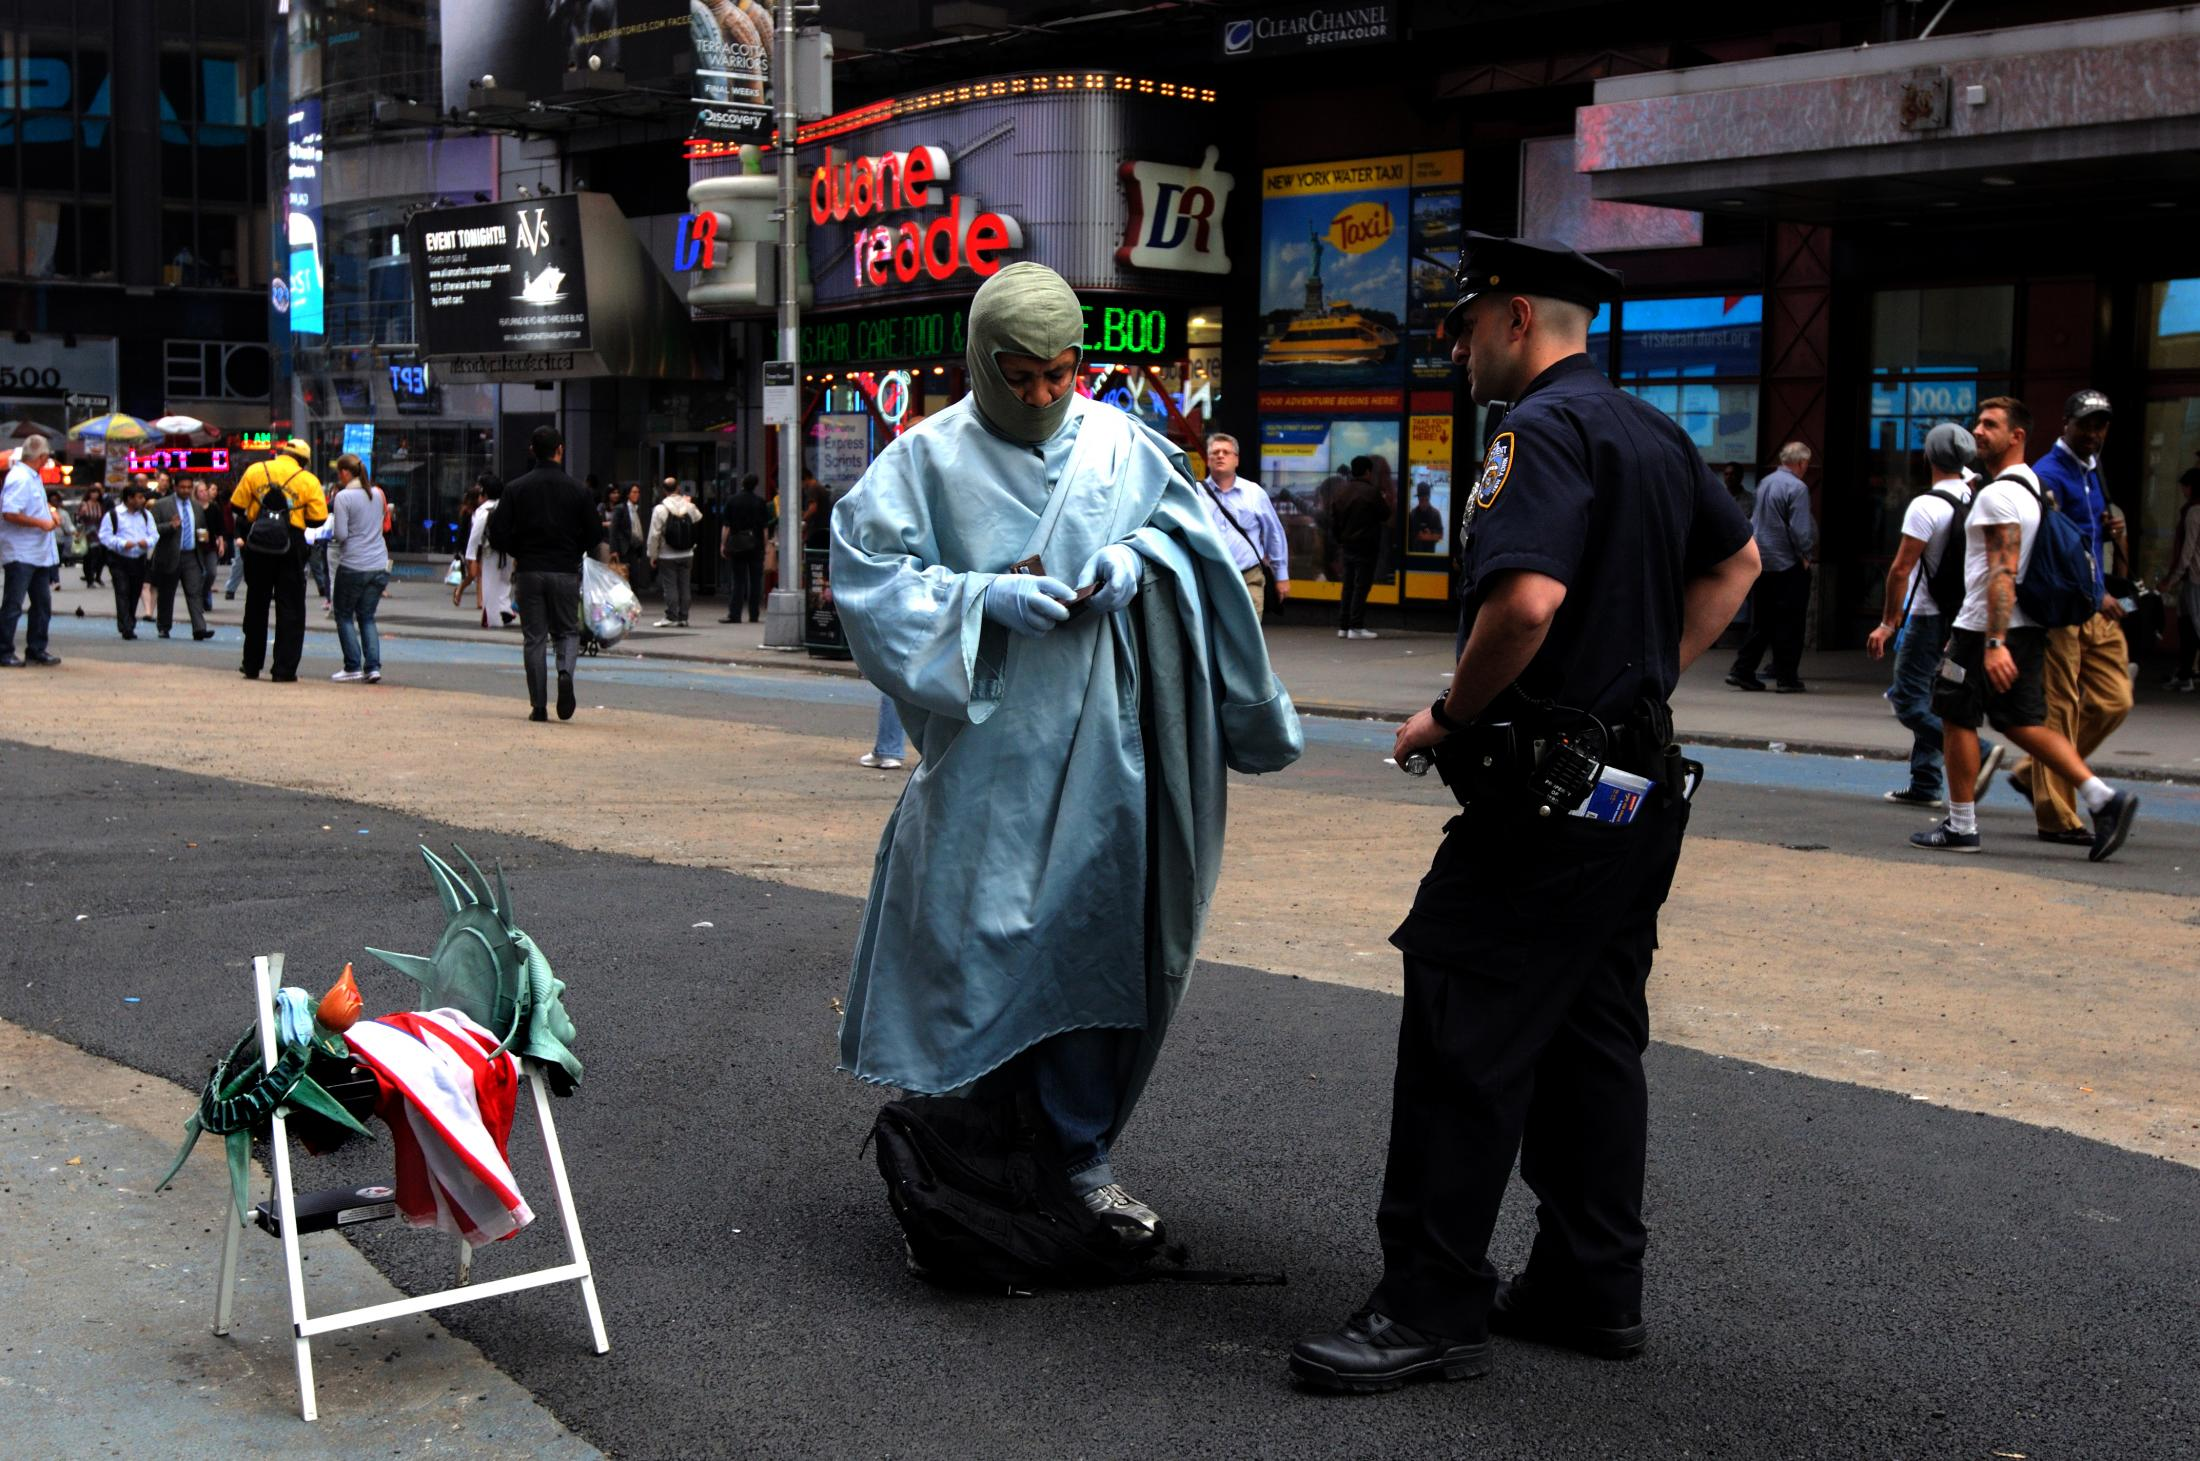 New York, UNITED STATES ,A NYC policeman demands to see the documents of an Immigrant dressed up as Statue of Liberty, Times Square.2013 Joana Toro.